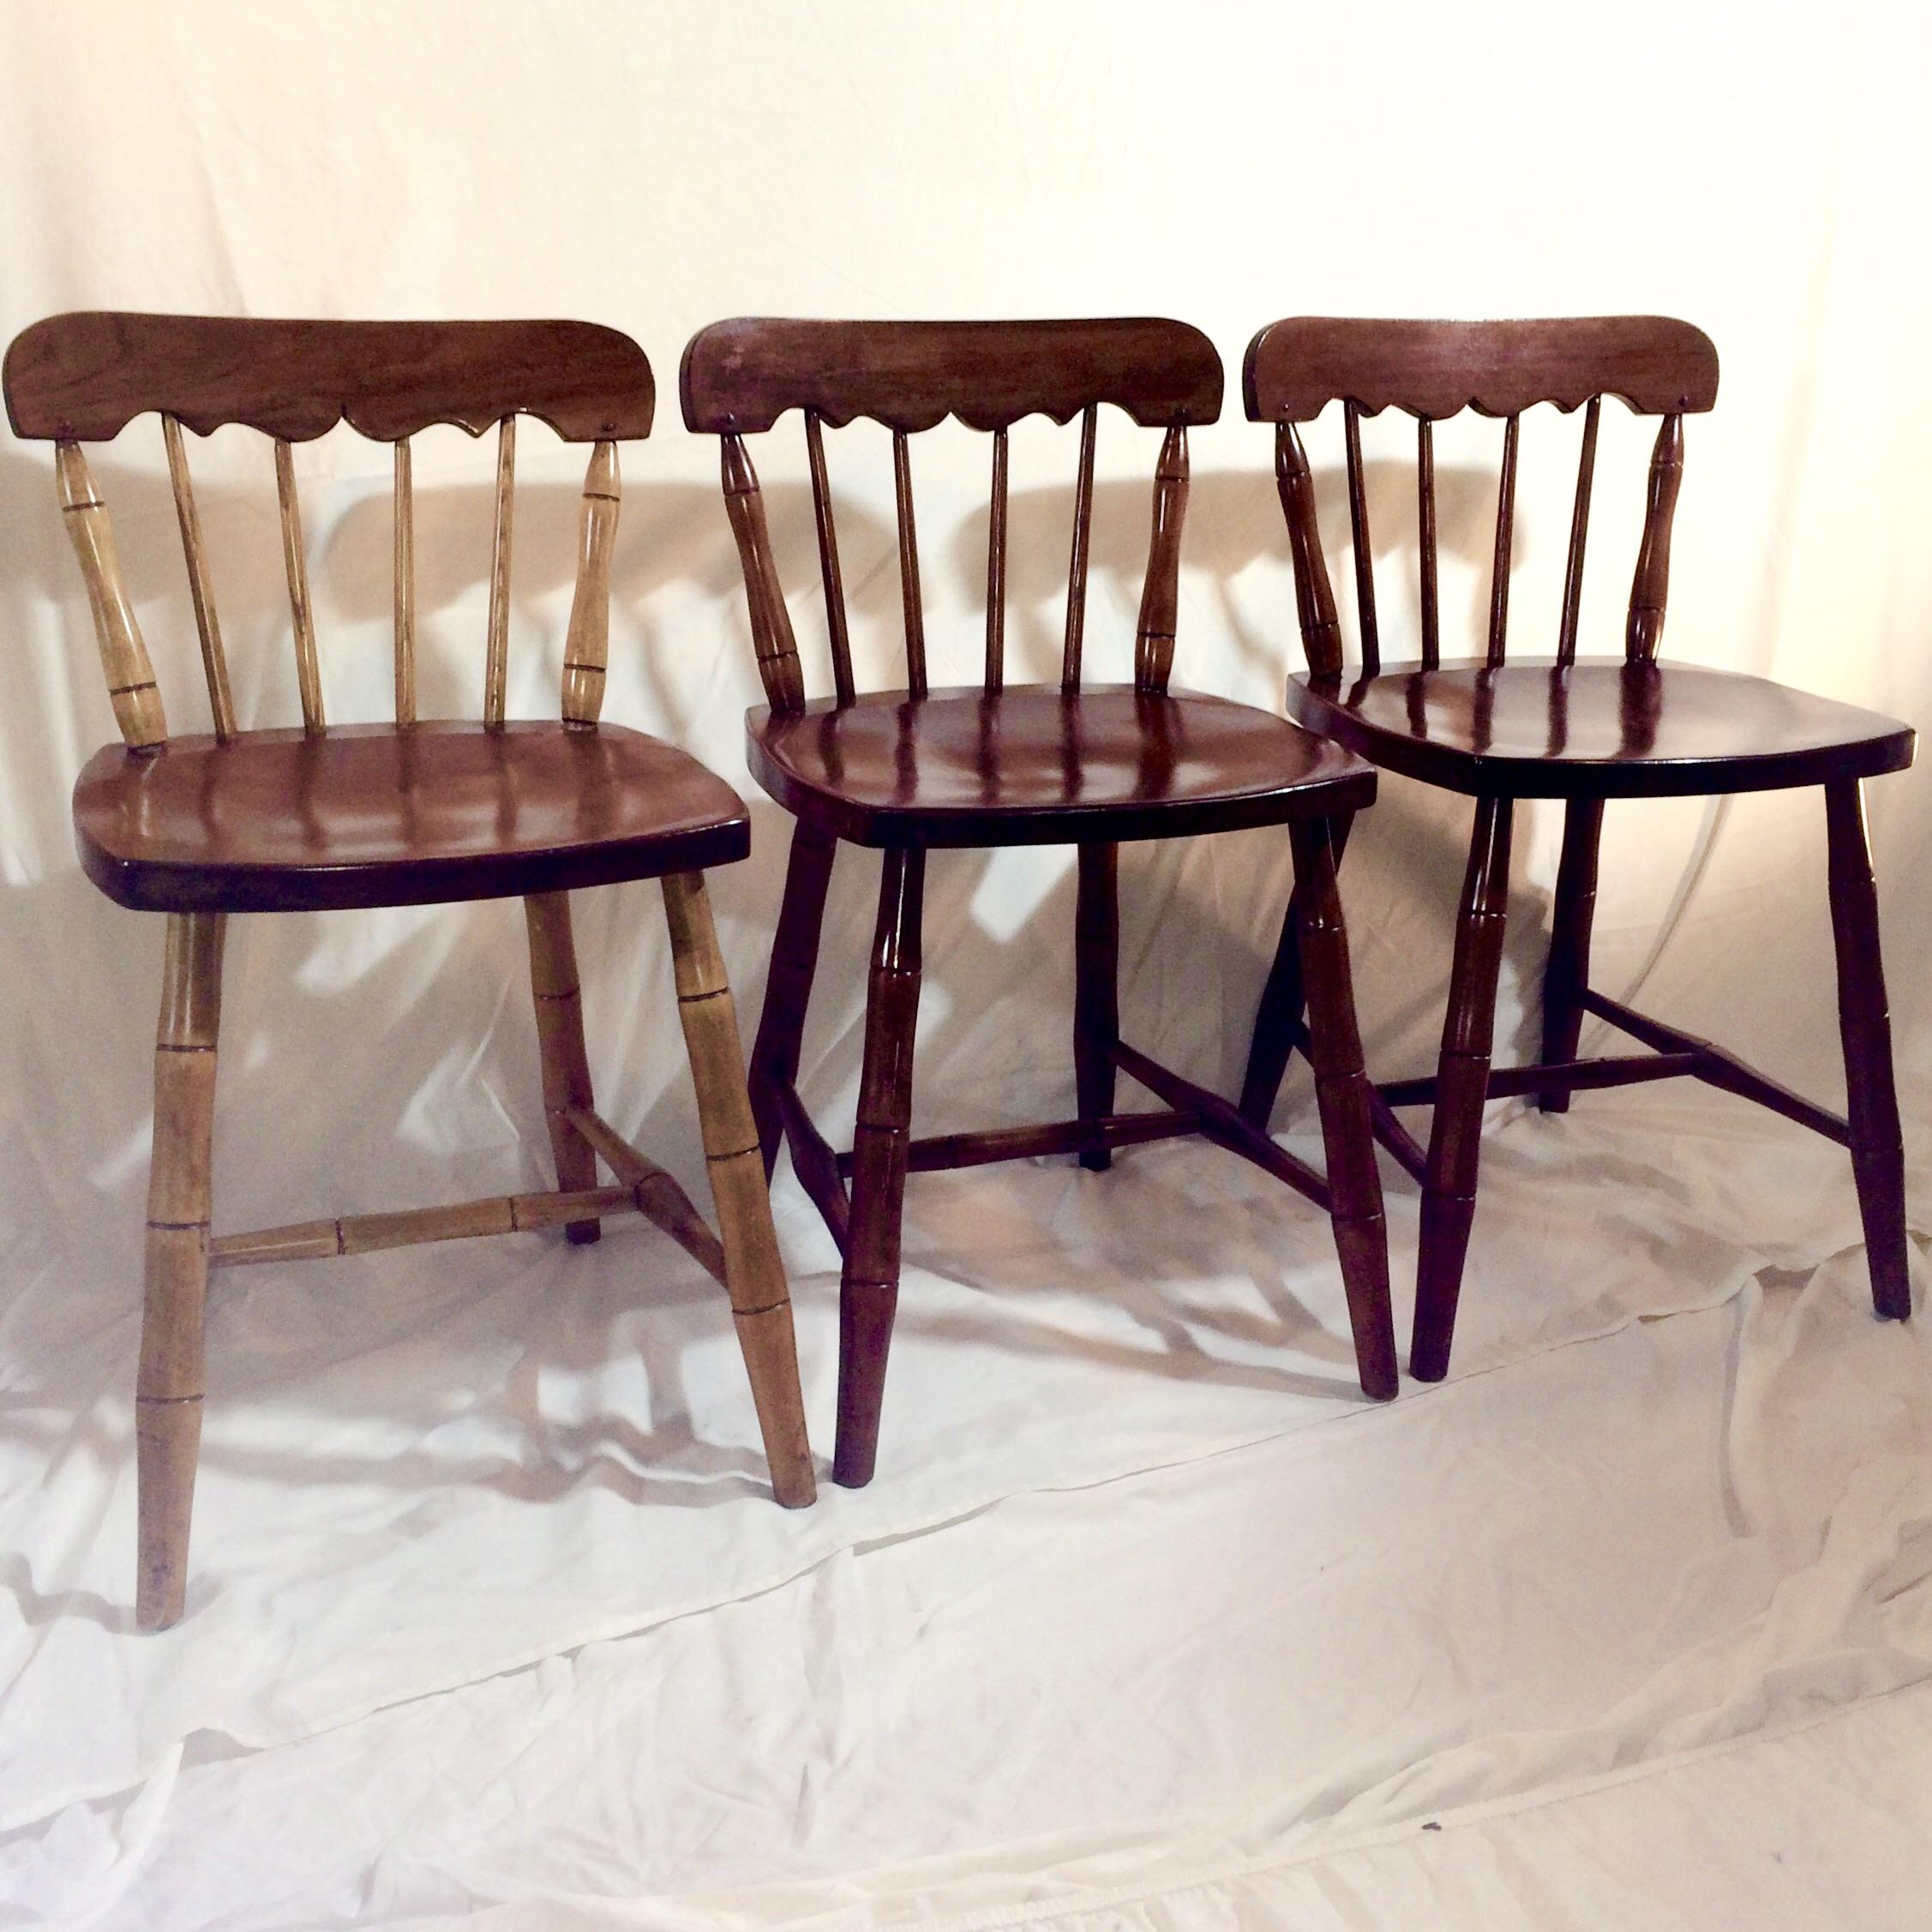 Gentil These Chairs Are Part Of The Cherry Valley Collection By Stickley Furniture  Company From The 1950u0027s